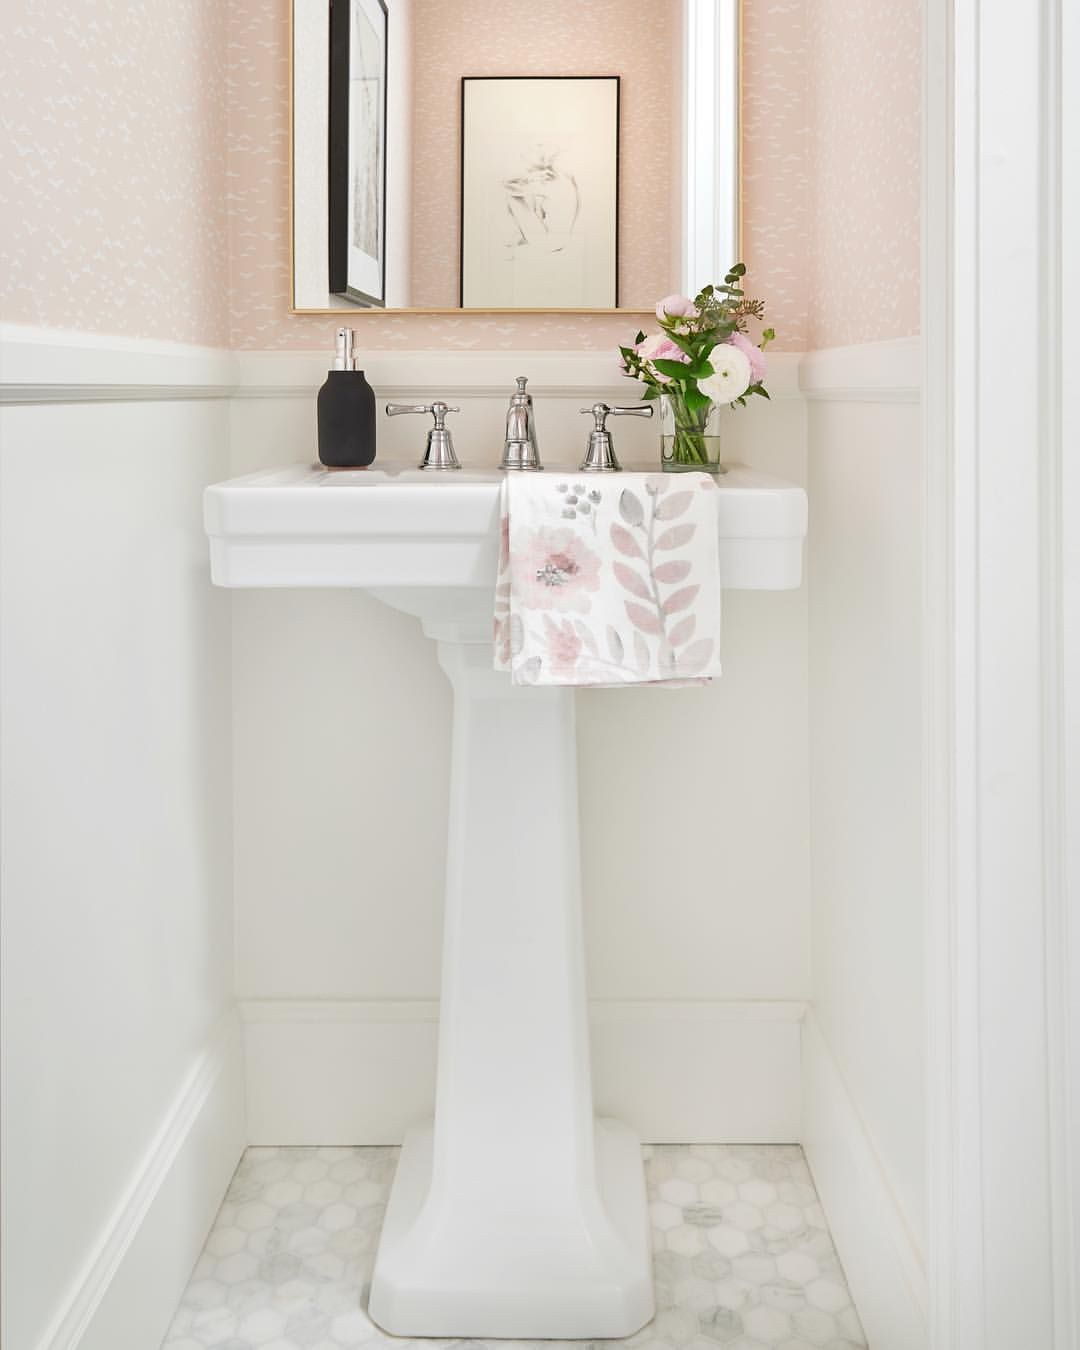 Bright White Powder Room With Dxvcanada Pedestal Sink And Faucet